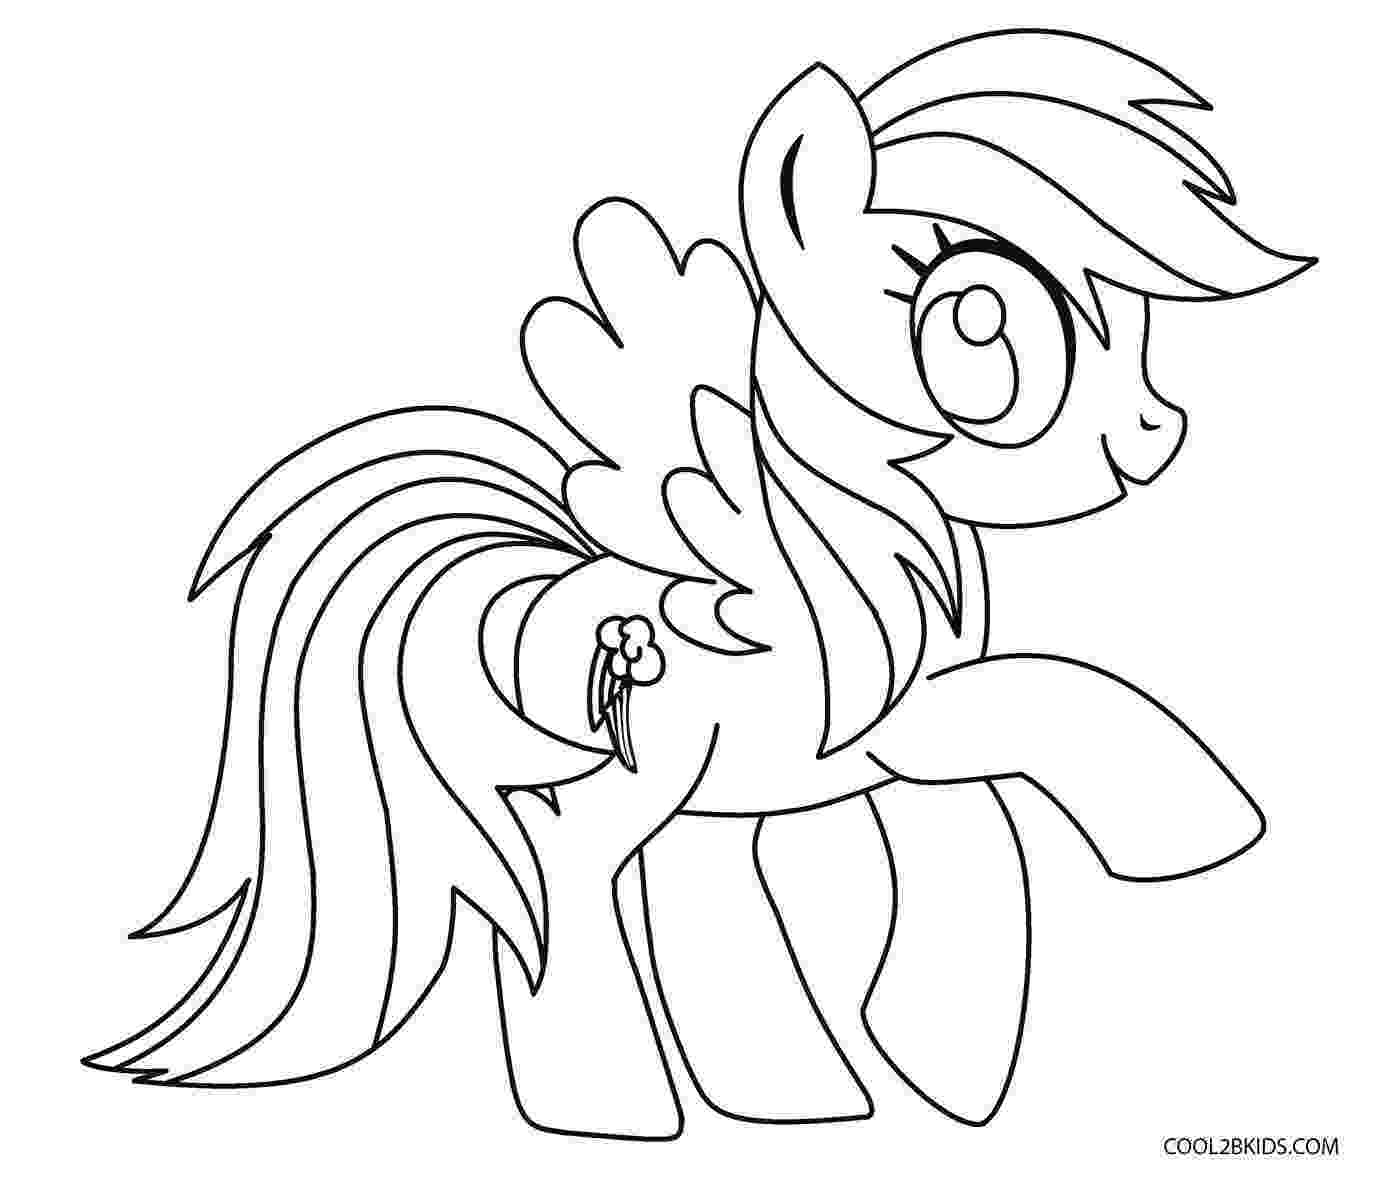 my little pony coloring pages rainbow dash my little pony is jumping coloring pages teckning pony coloring little rainbow my pages dash